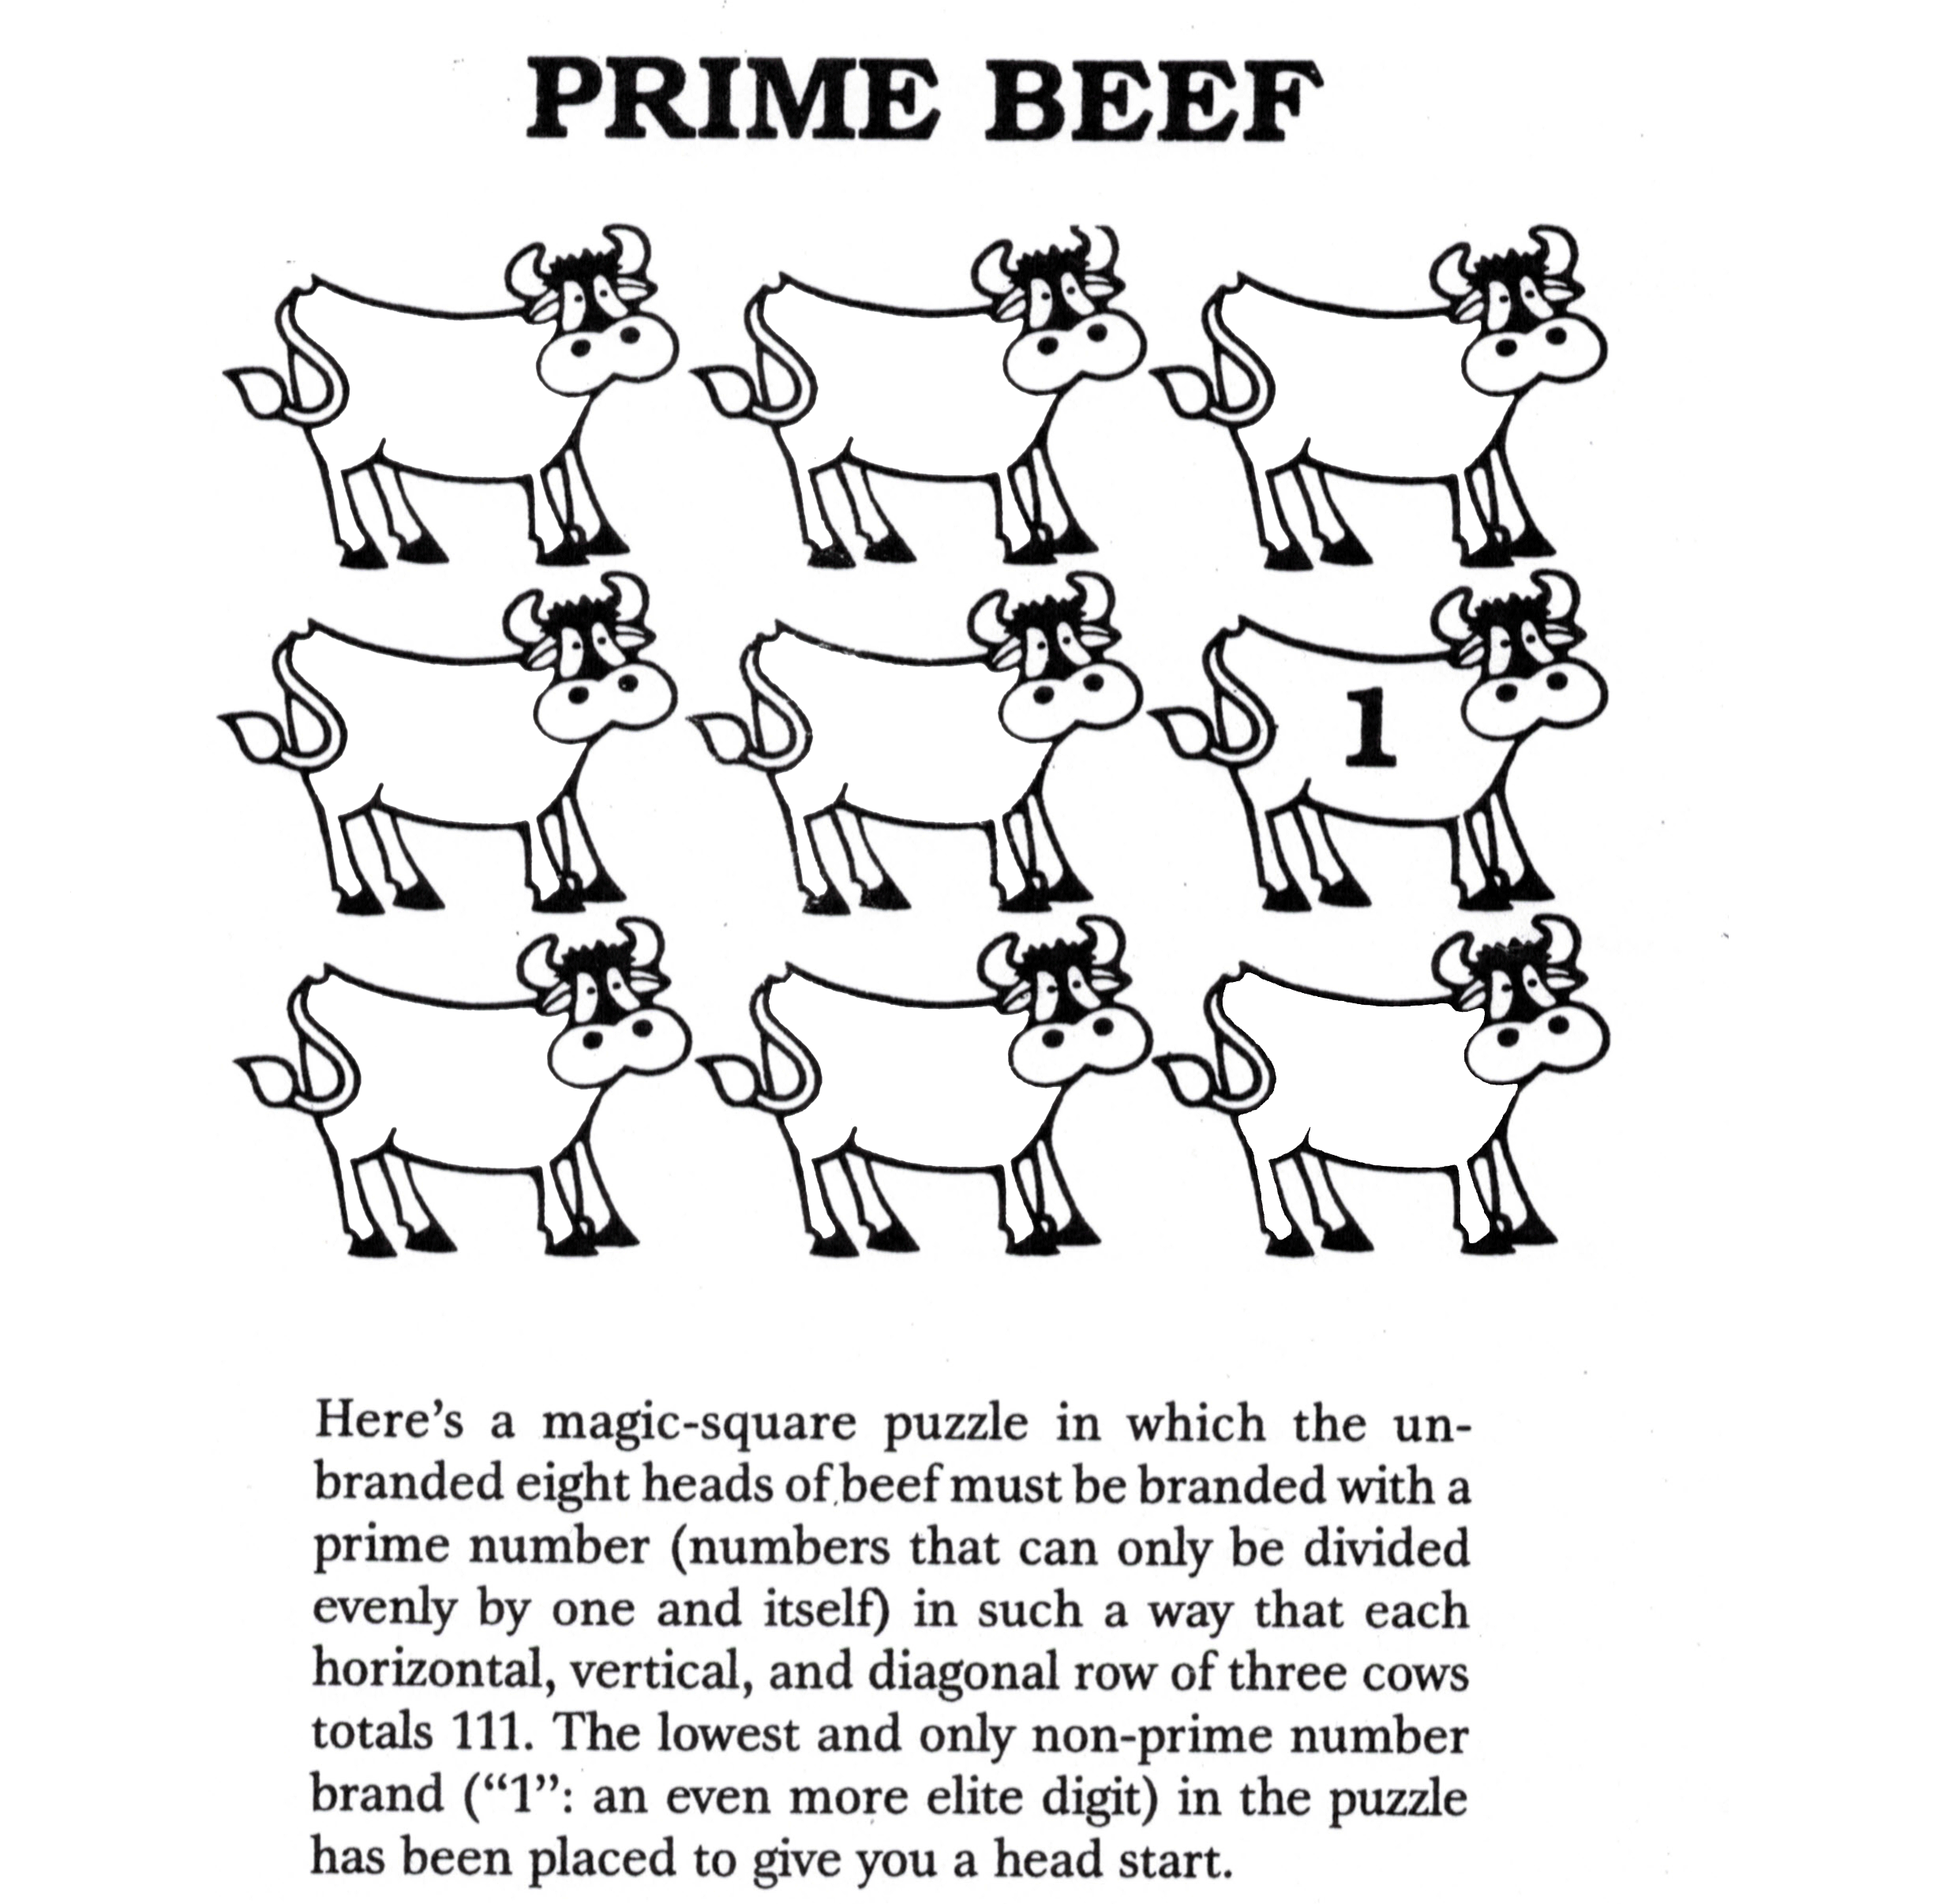 Uncategorized Turkey Puzzle post thanksgiving puzzle prime beef mathnasium then this appeared in my email and its so appropriate enough with turkey lets have instead